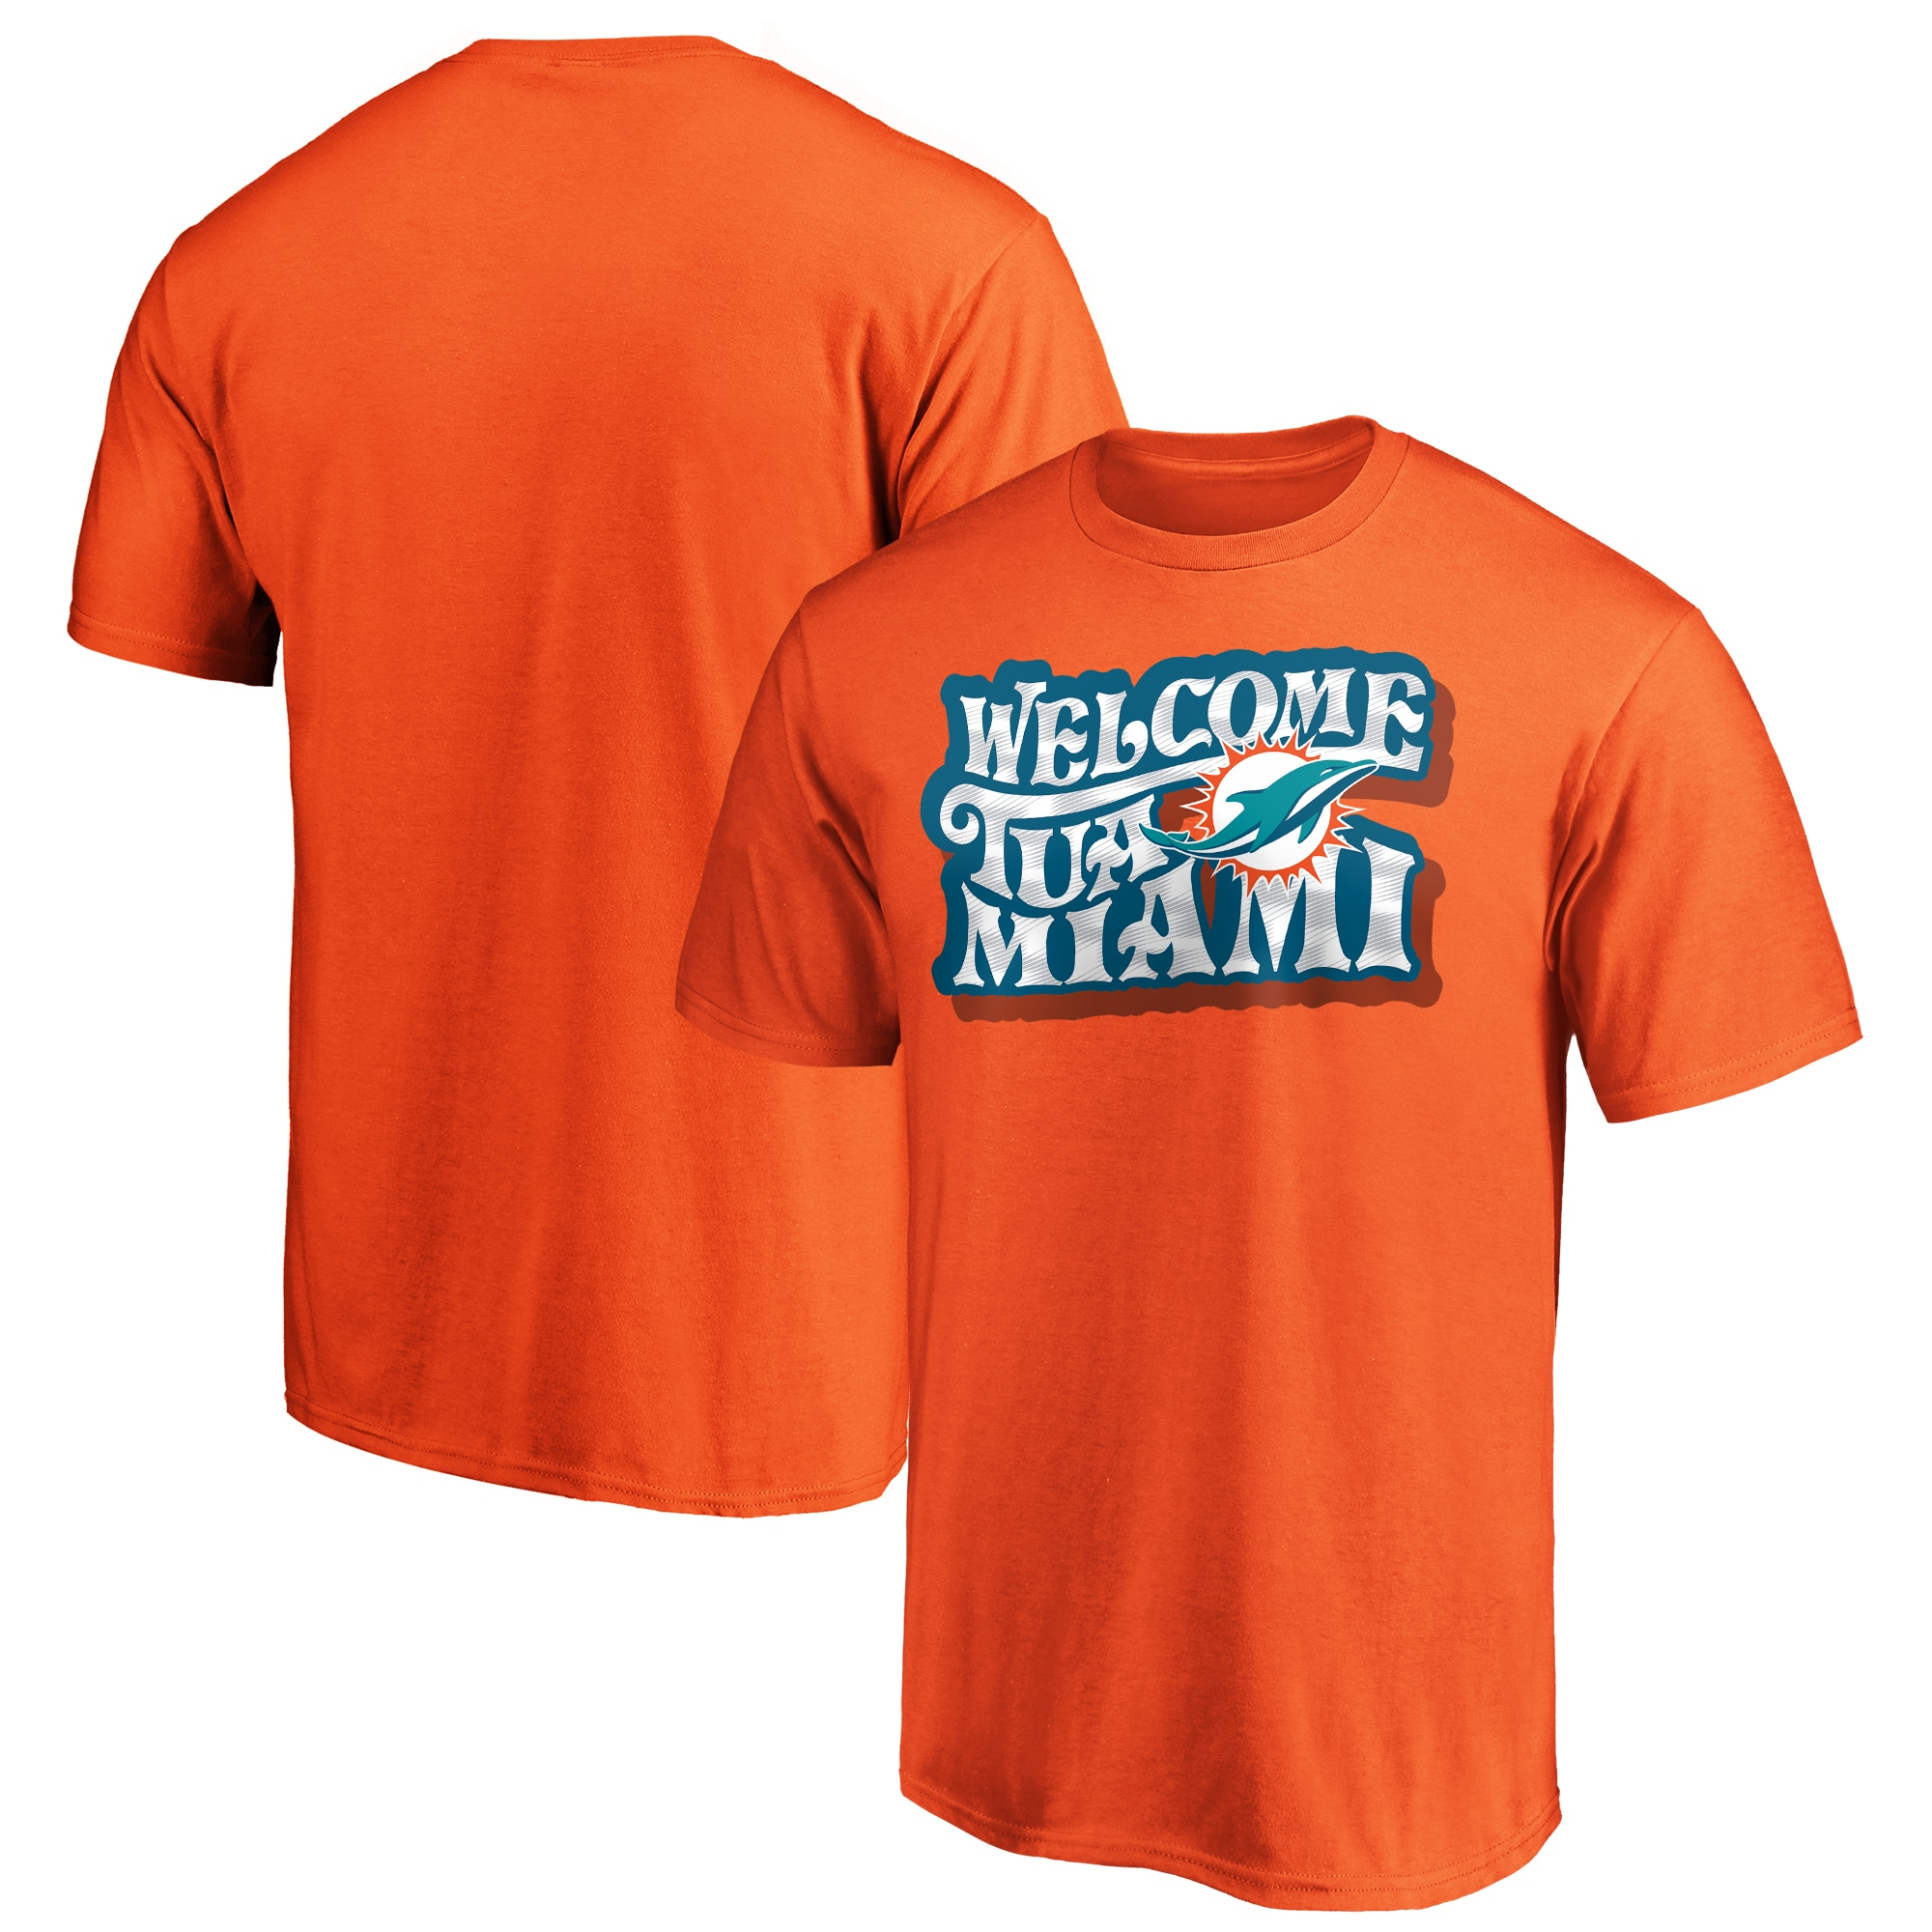 Miami Dolphins Fanatics Branded Welcome Tua Miami T-Shirt - Orange